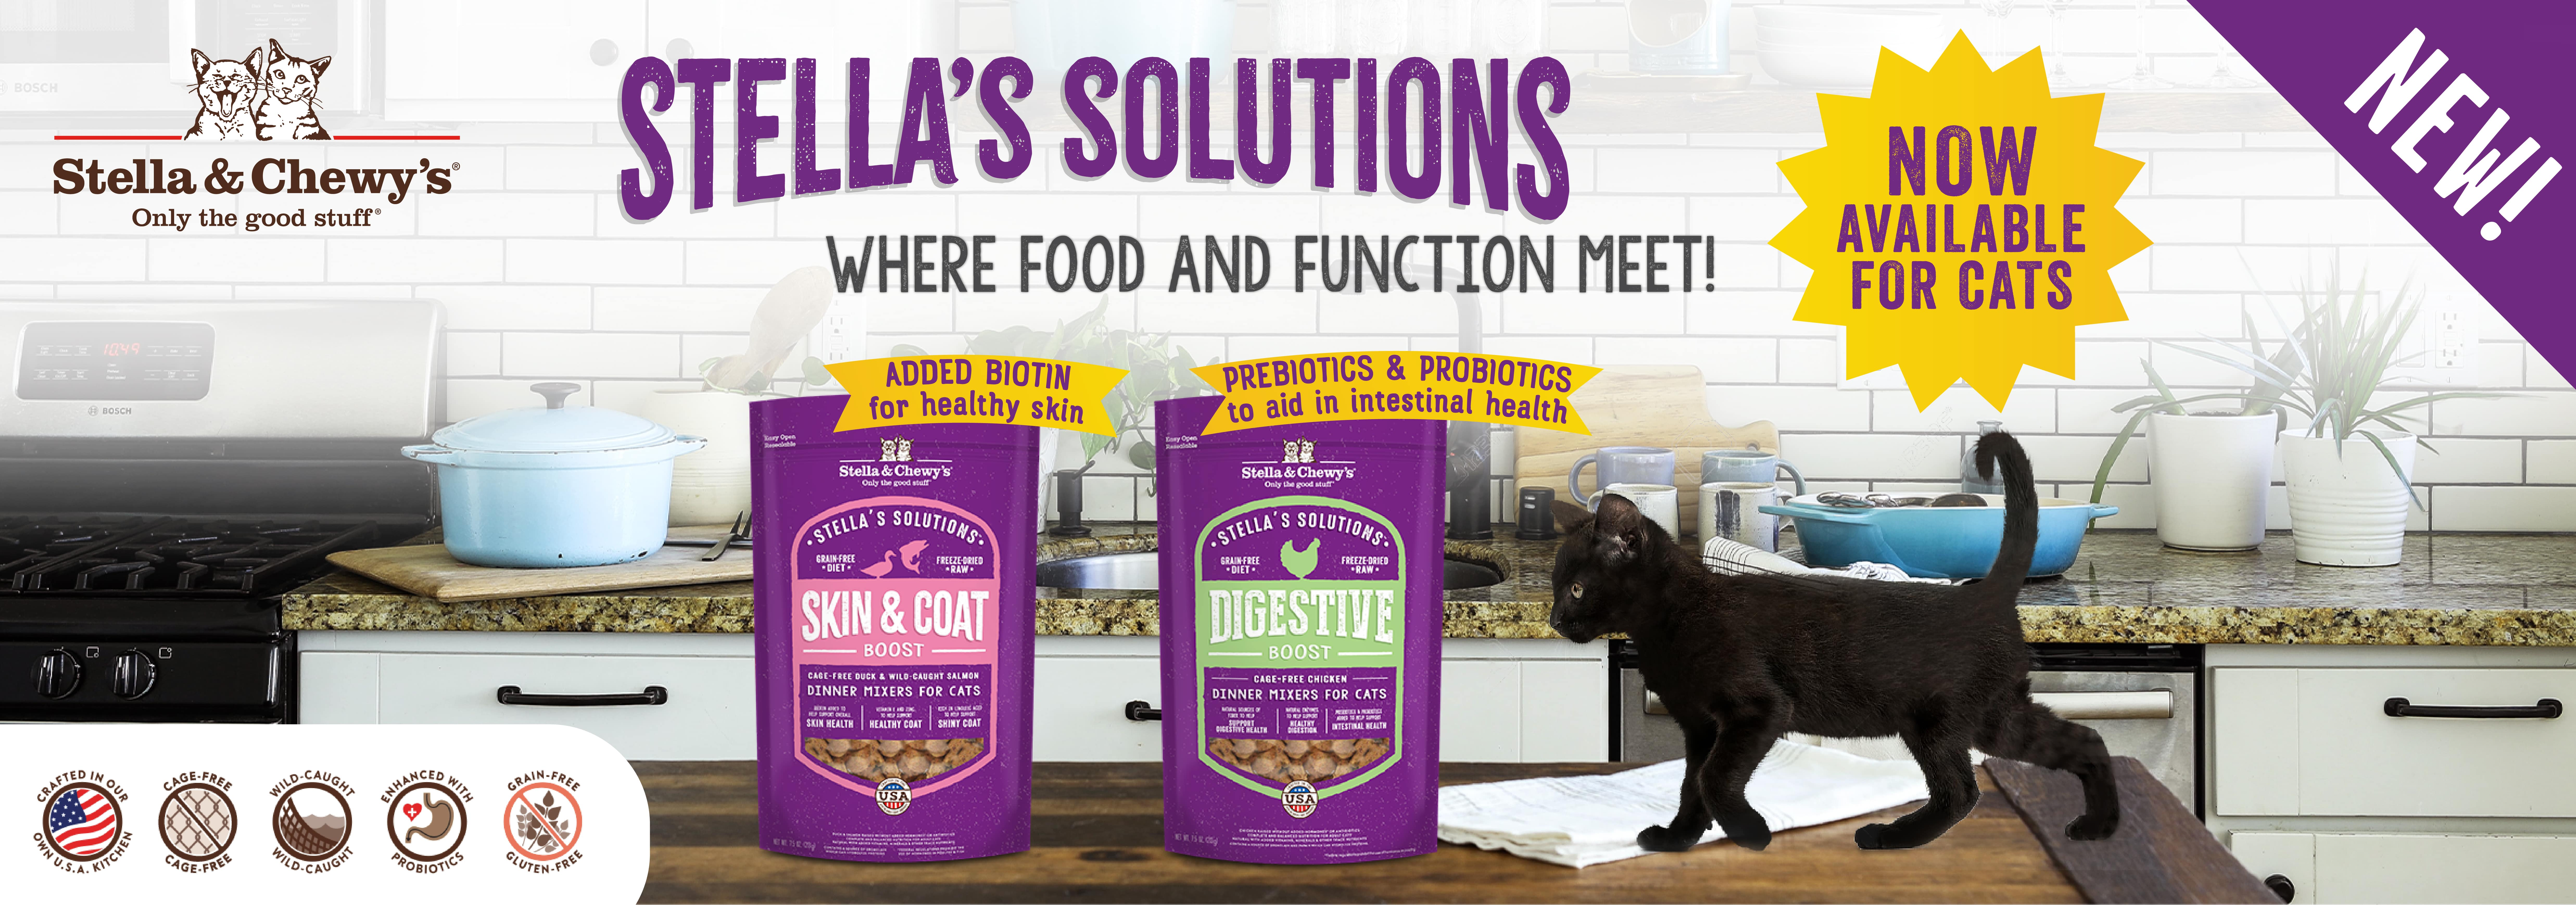 Stella's Solutions Banner (Cat)_Normal 2